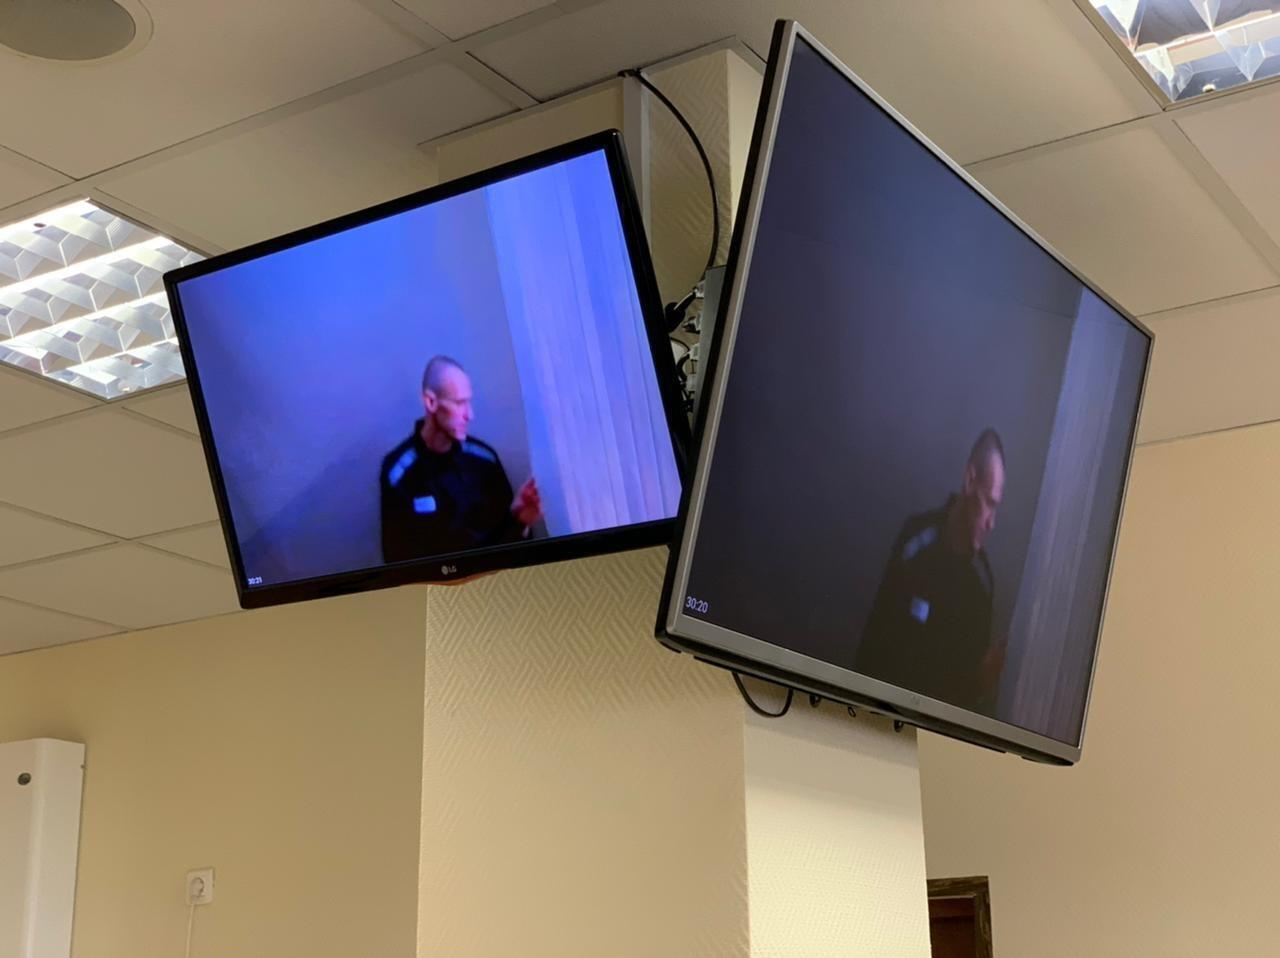 In this photo provided by the Babuskinsky District Court on Thursday, April 29, 2021, Russian opposition leader Alexei Navalny appears on TV screens via a video link from prison, during a hearing on his charges for defamation, in the Babuskinsky District Court in Moscow, Russia. The politician was convicted in February and ordered to pay a fine of 850-thousand rubles (the equivalent of $11,500). It was Navalny's first public appearance since his transfer to a penal colony last month. (Babuskinsky District Court Press Service via AP)